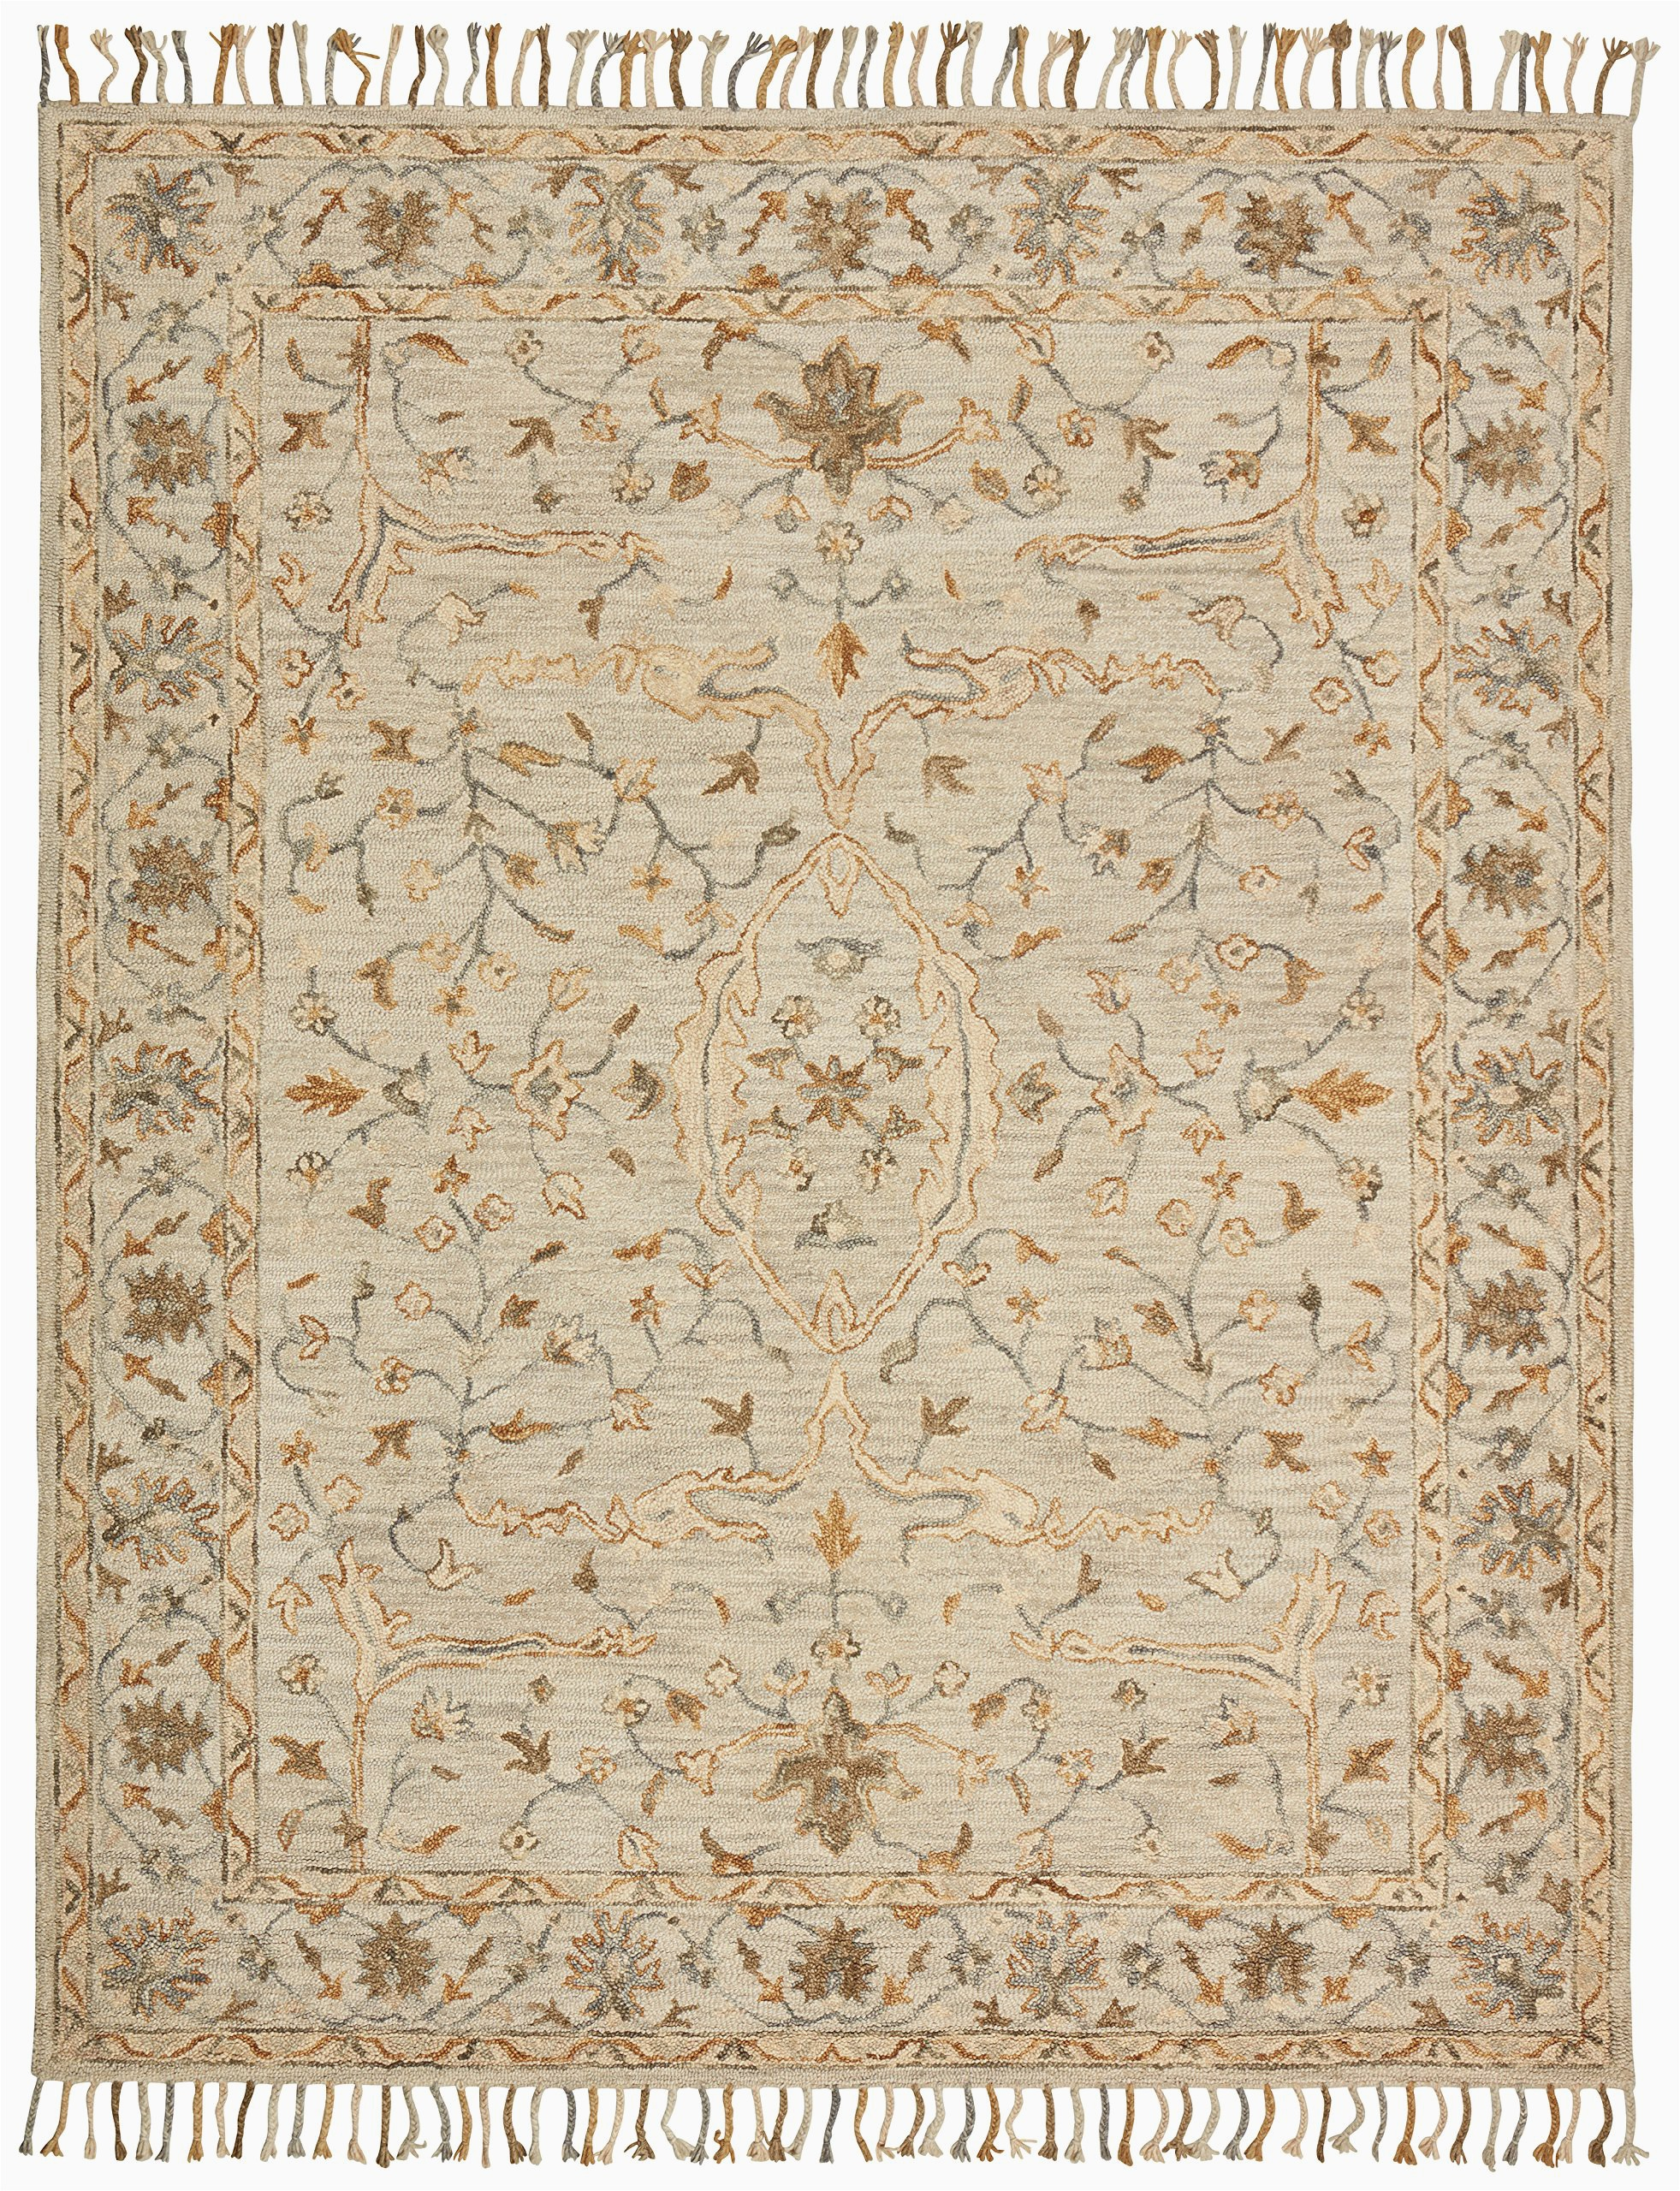 Stone and Beam area Rugs Amazon Brand – Stone & Beam Cooper Vintage Farmhouse Motif Wool area Rug 4 X 6 Foot Charcoal and Beige